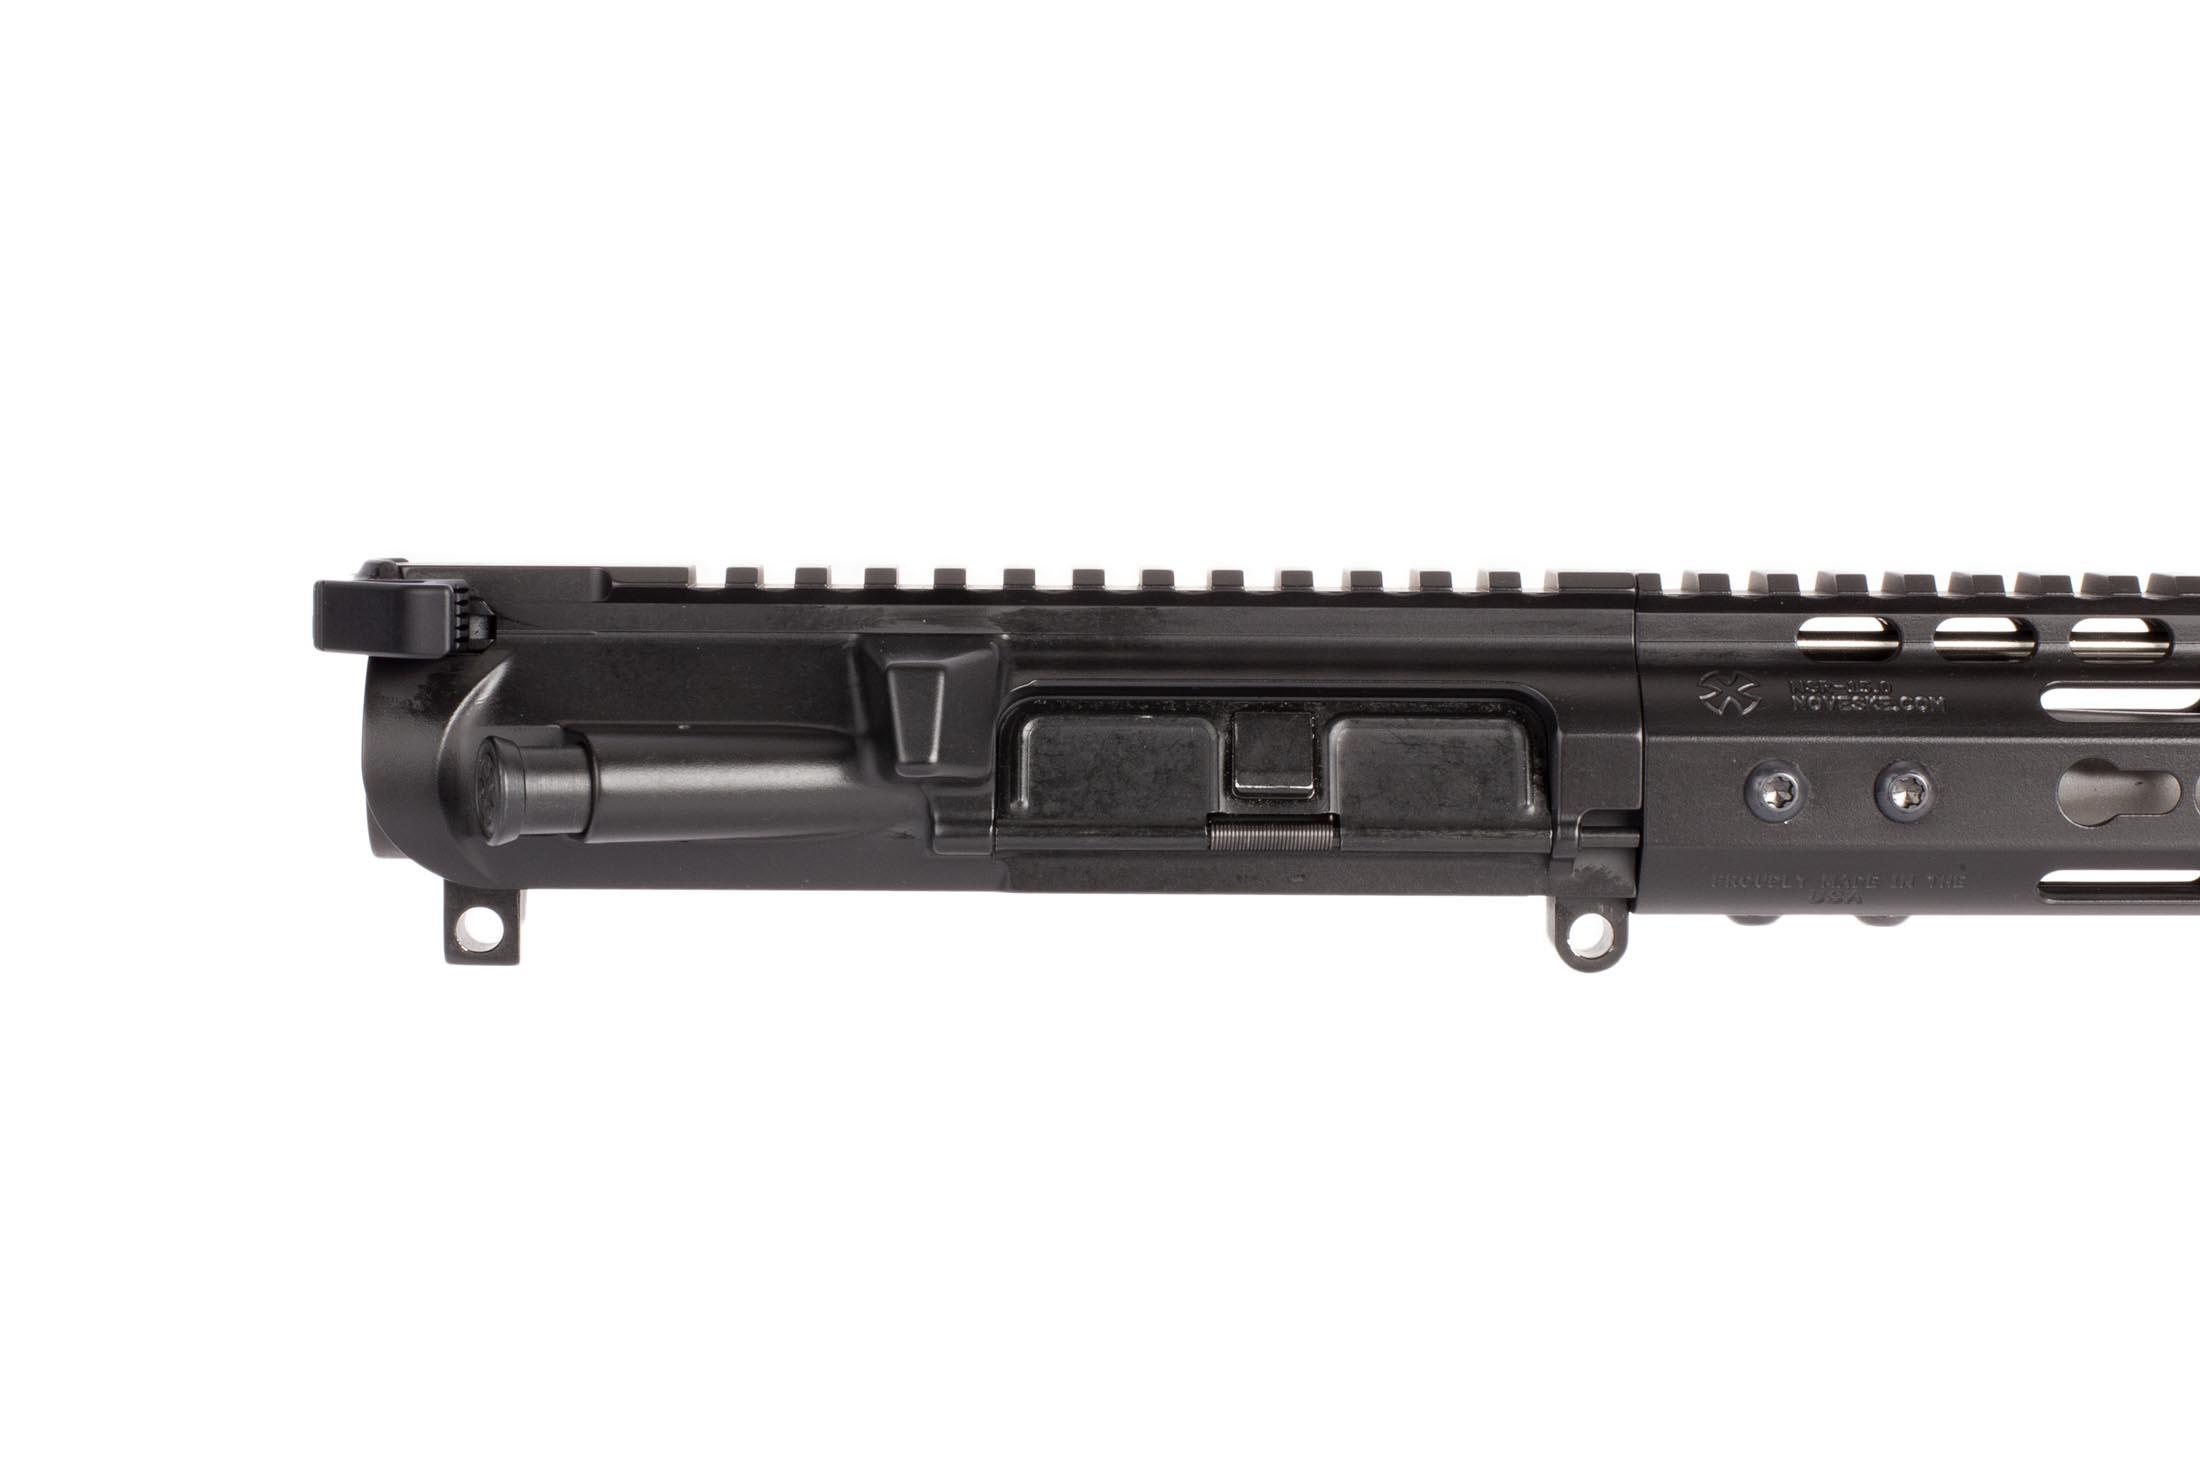 "Noveske Rifleworks 13.7 Infidel 5.56 Gen III Complete Upper - with 15"" KeyMod NSR and KX5"